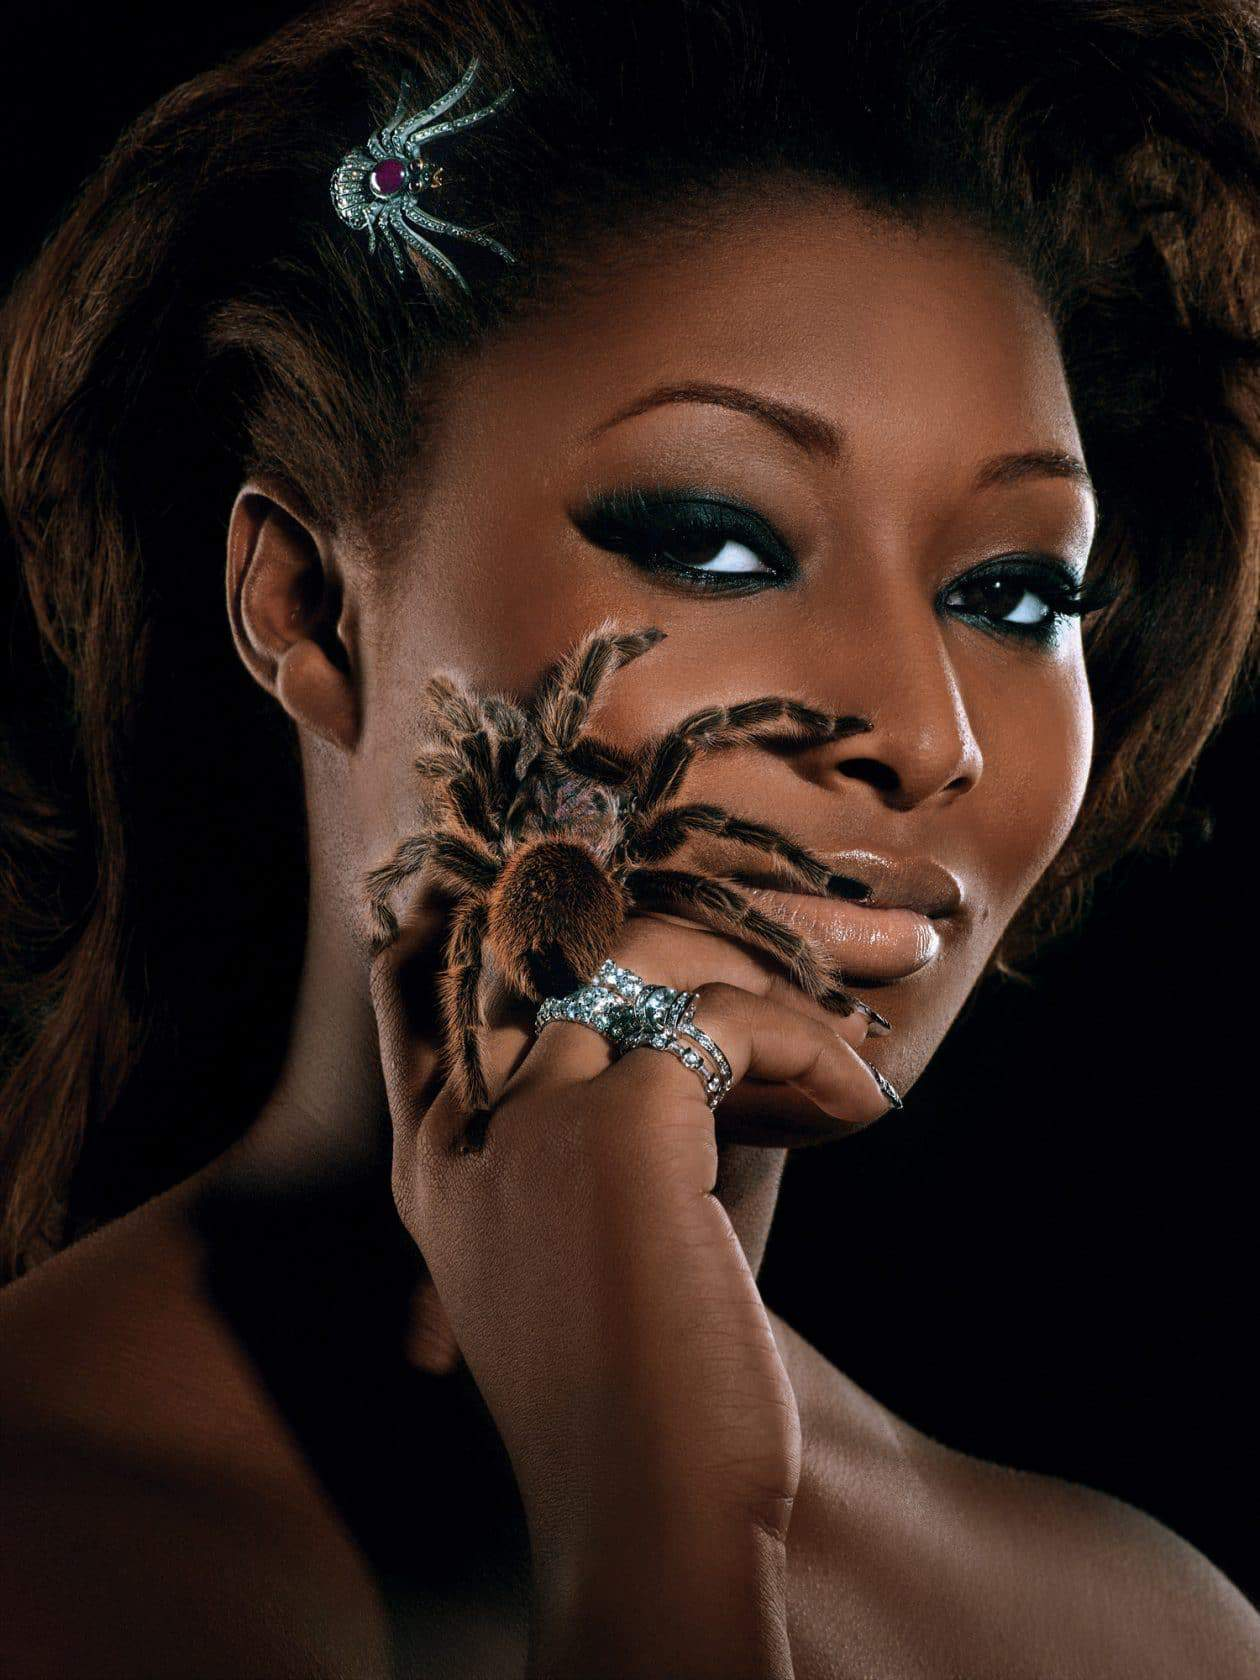 """""""The Girl Who is Panic Stricken""""--Toccara, student; age 22 of Dayton, Ohio, models diamond jewelry, while also accessorized with a live tarantula in AMERICA'S NEXT TOP MODEL on UPN Photo:Diodato/UPN. (c) 2004 CBS Broadcasting Inc. All Rights Reserved."""